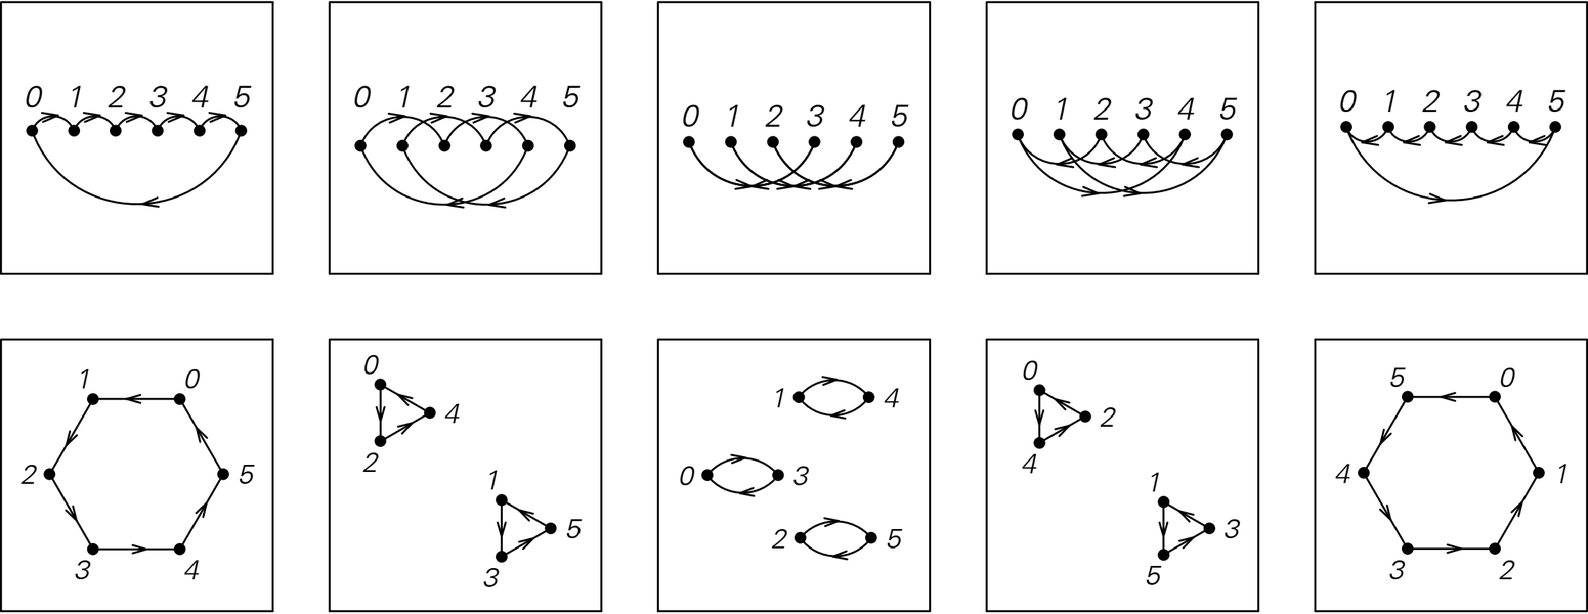 [State networks for] systems of limited size image 1